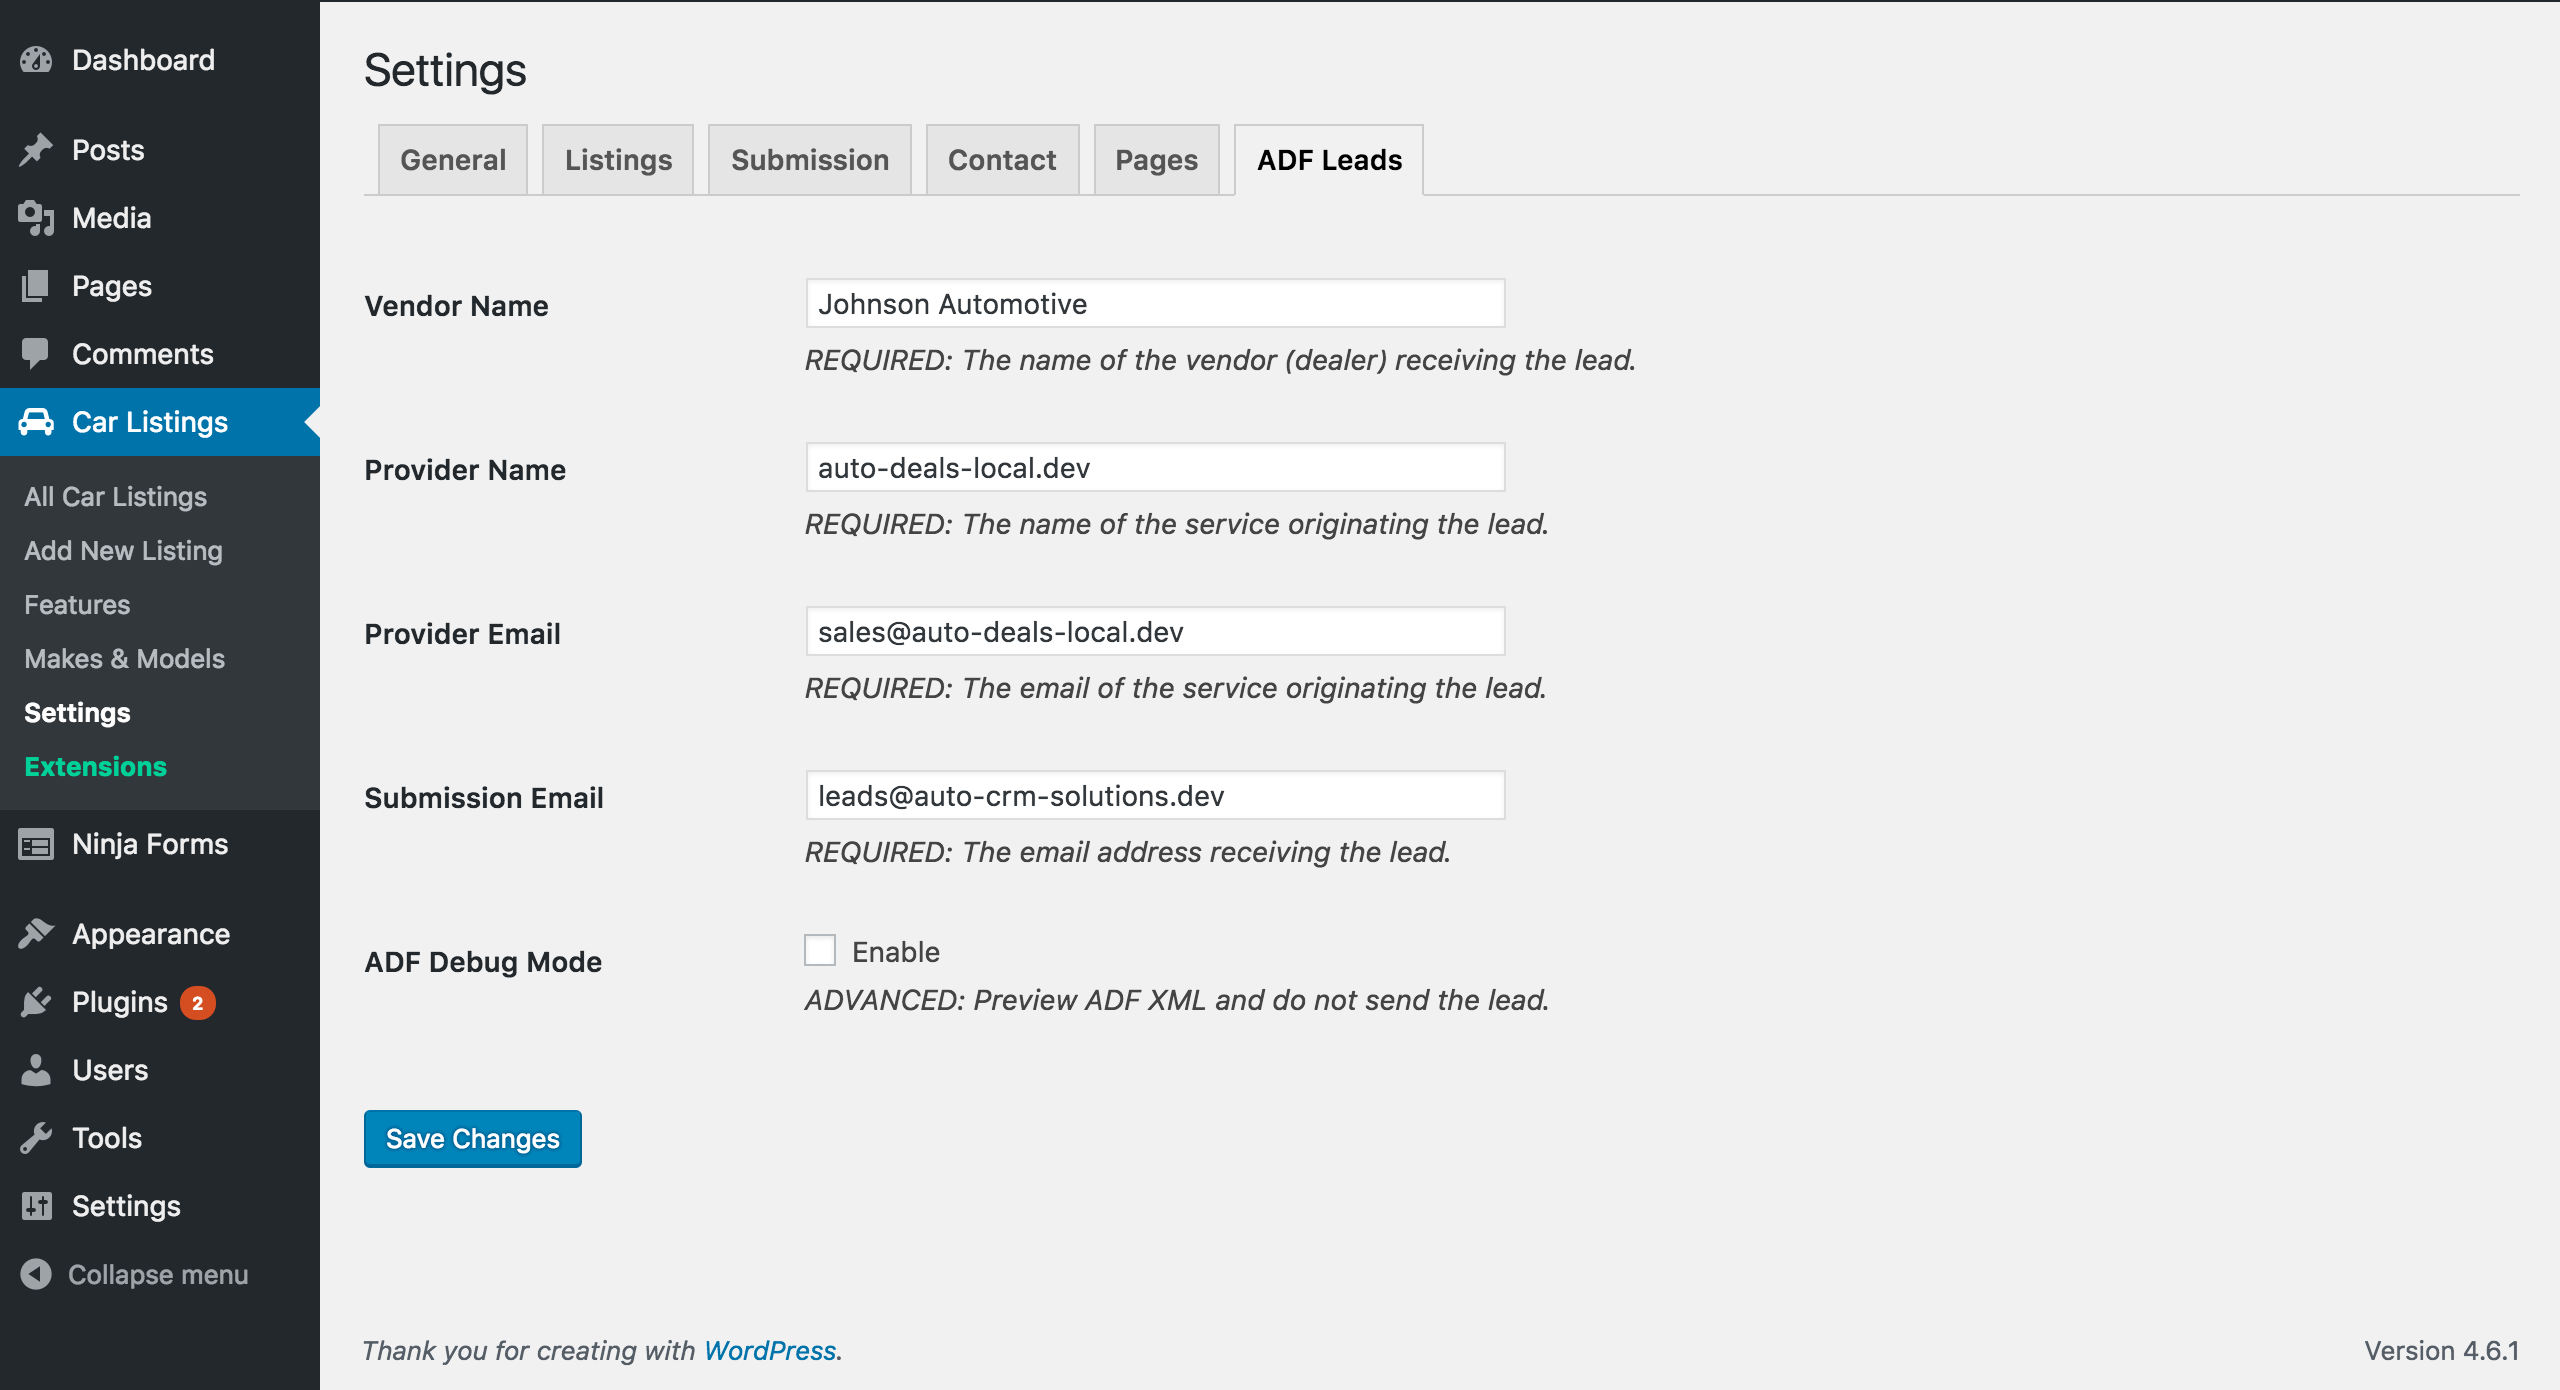 WP Car Manager - ADF Leads Settings